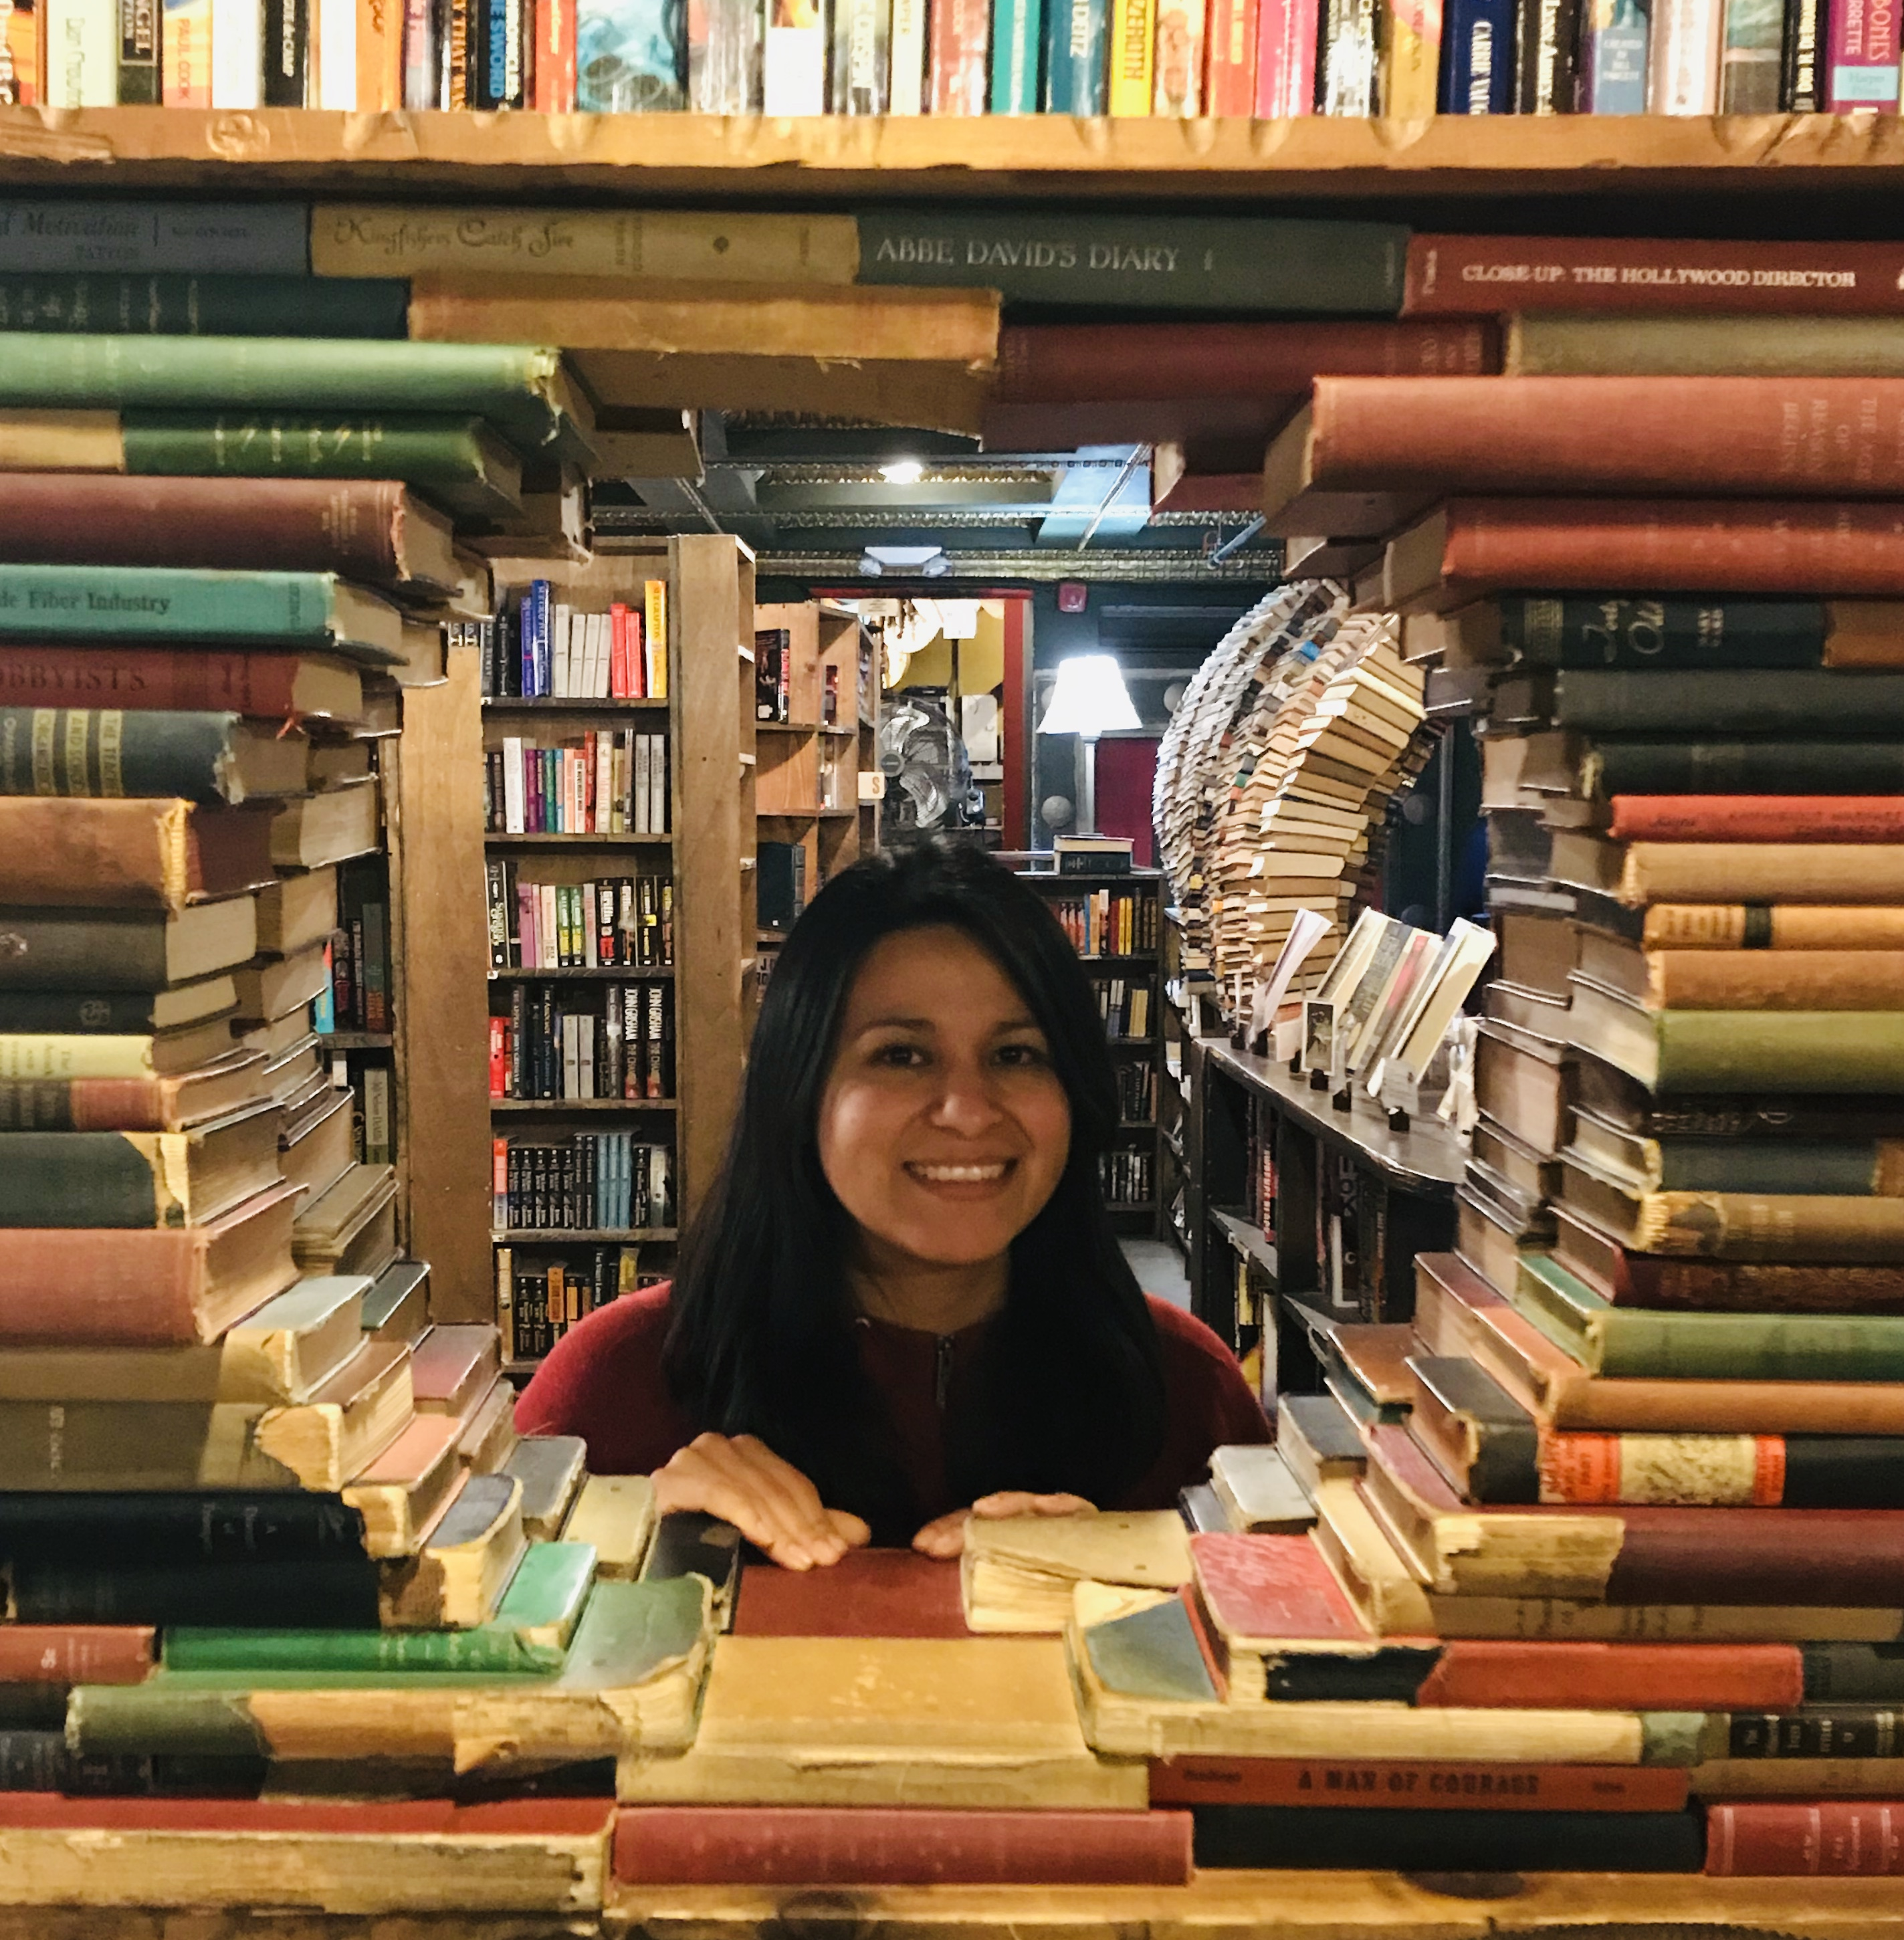 At the Last Bookstore